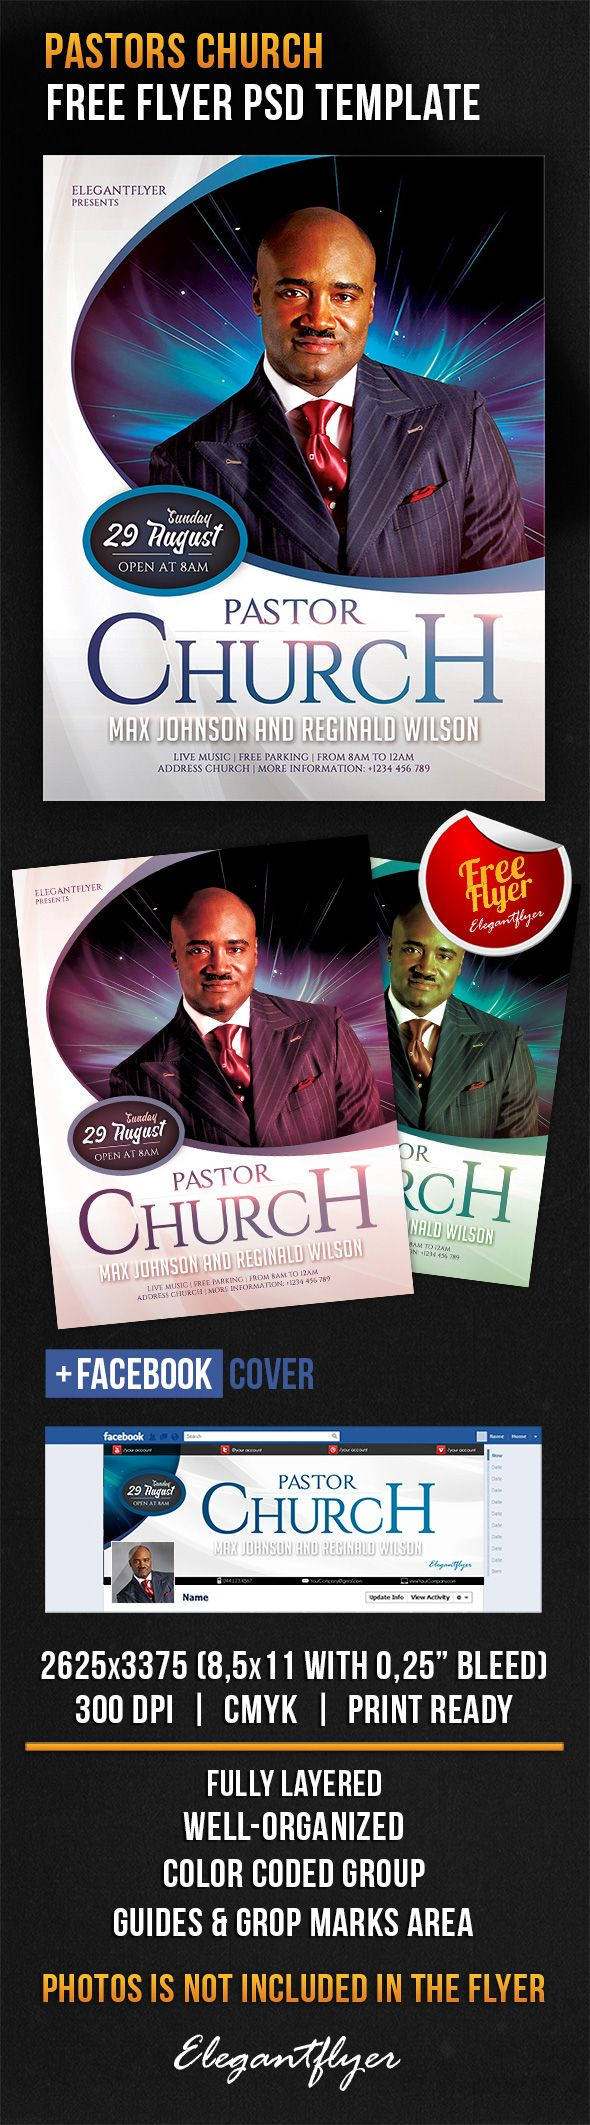 Pastors Church – Free Flyer PSD Template + Facebook Cover https://www.elegantflyer.com/free-flyers/pastors-church-free-flyer-psd-template-facebook-cover/